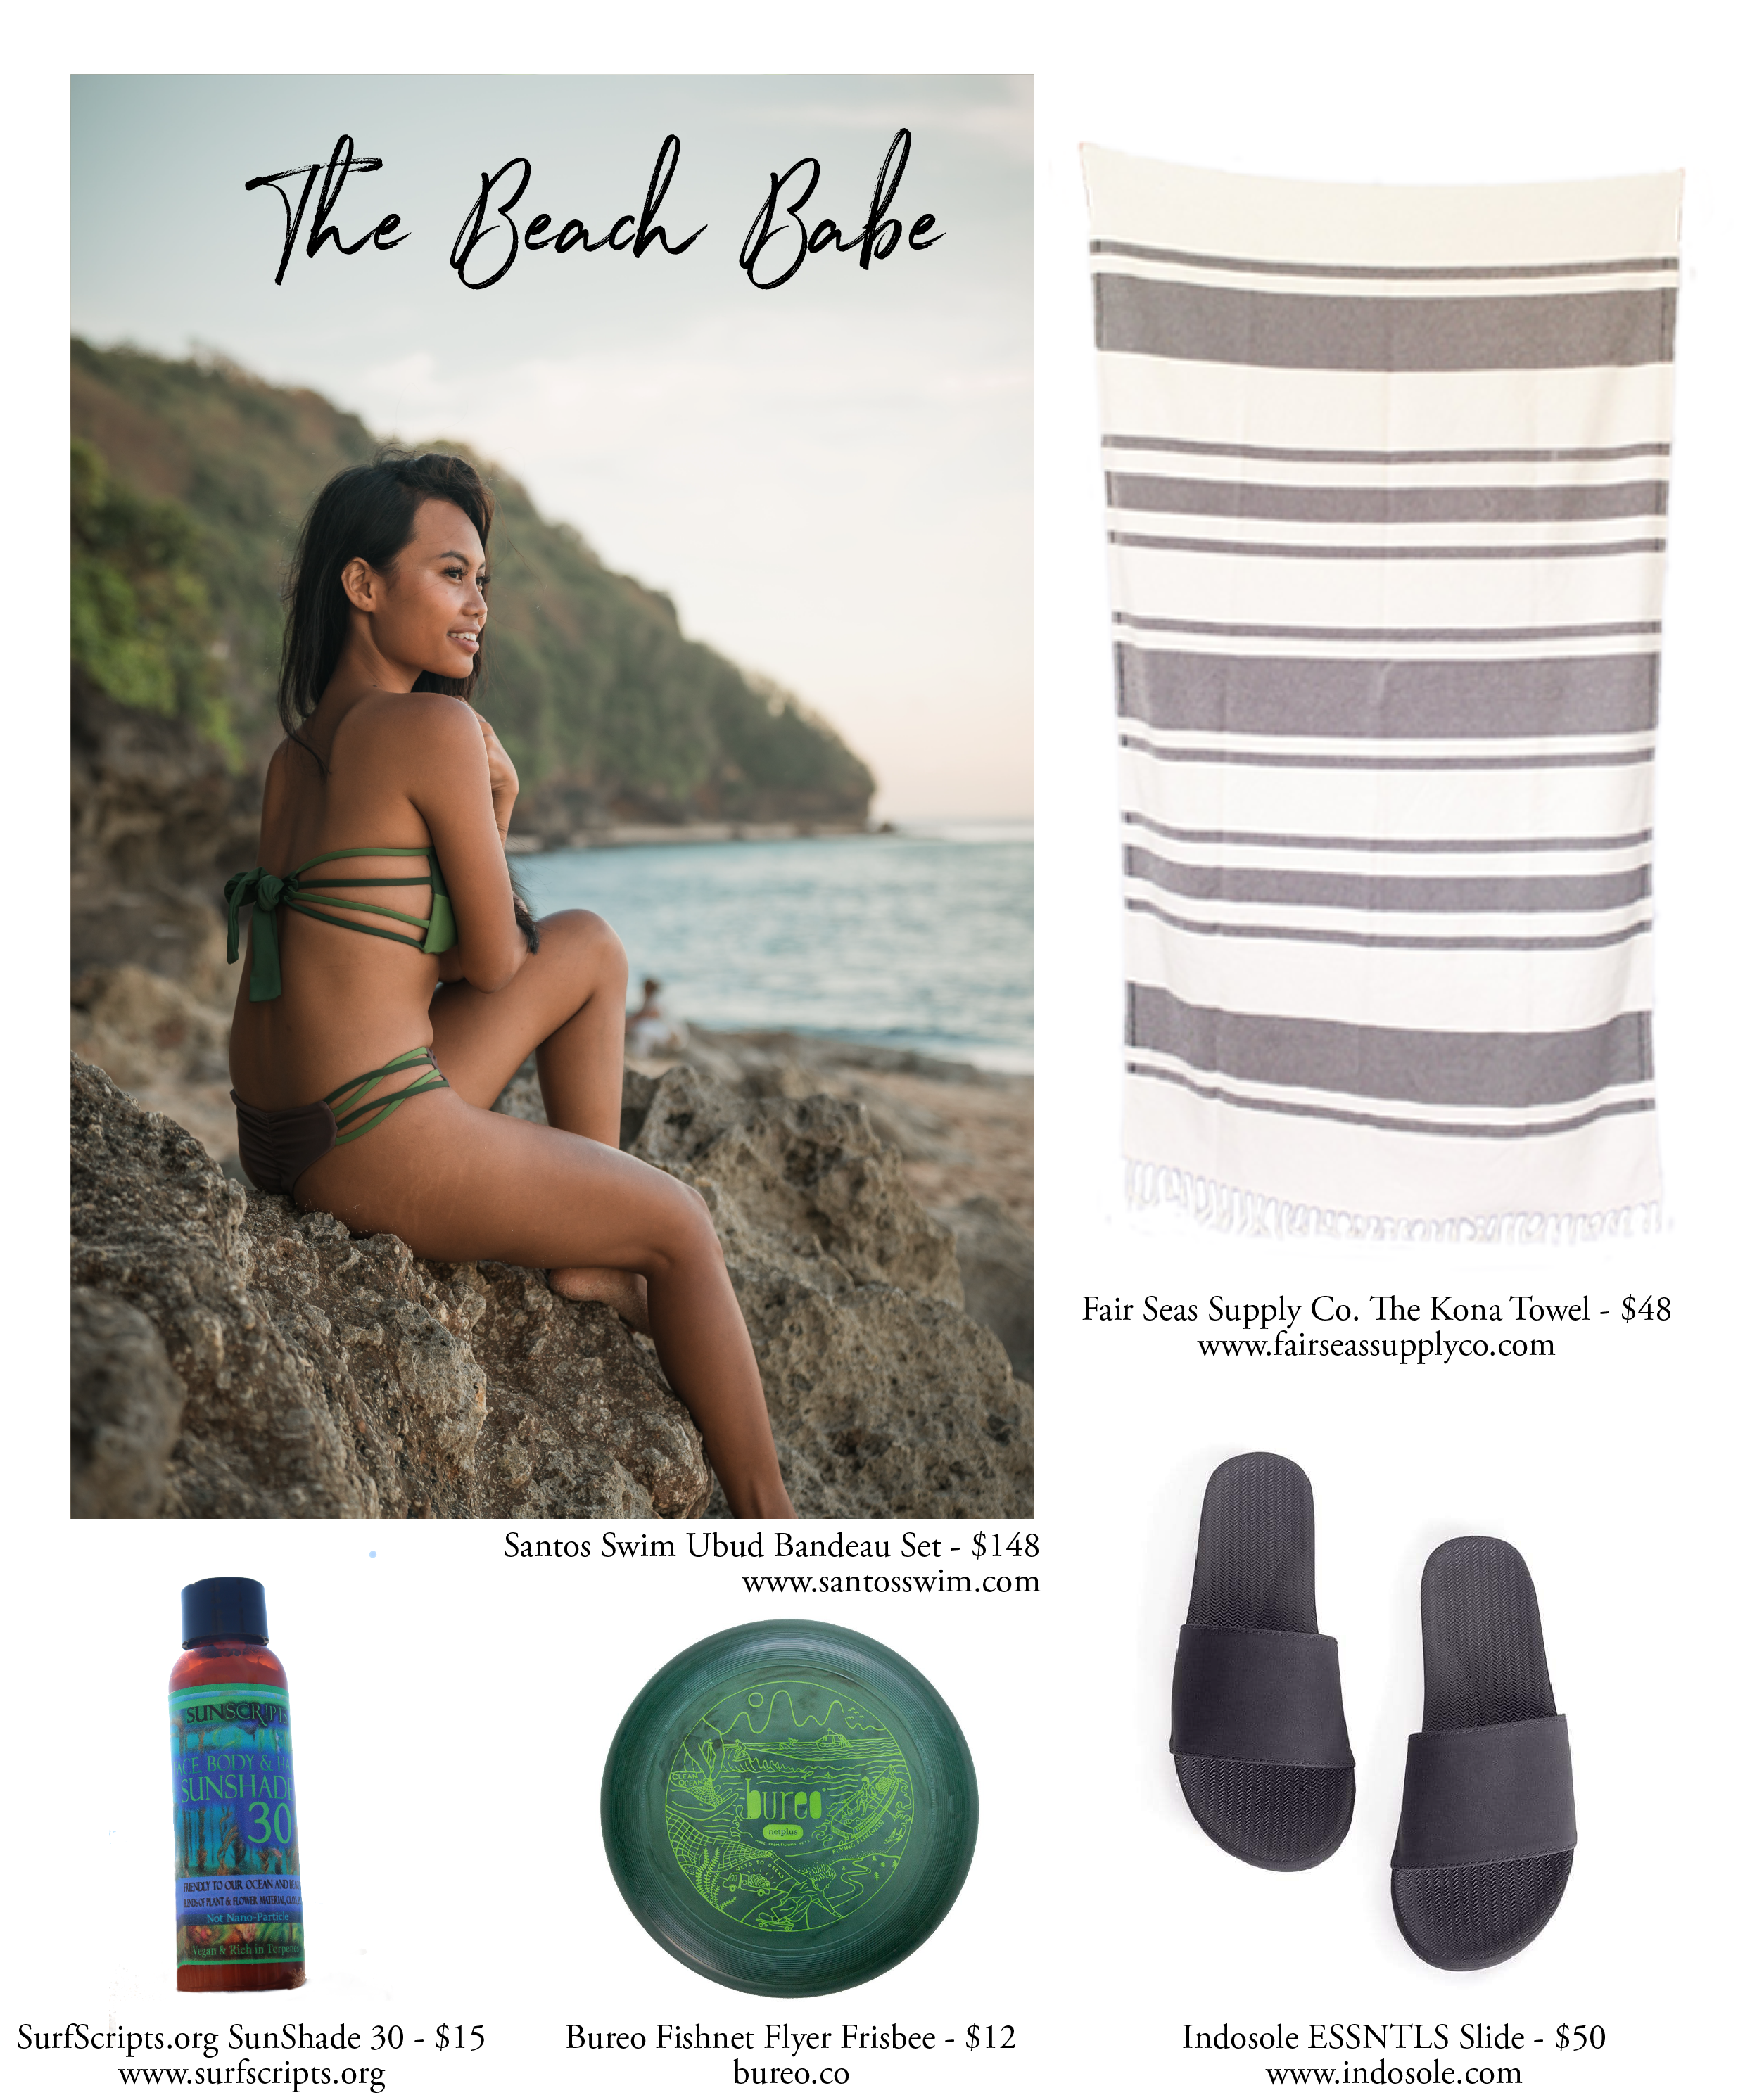 EcoFriendly Sustainable Gifts For Beach Babes